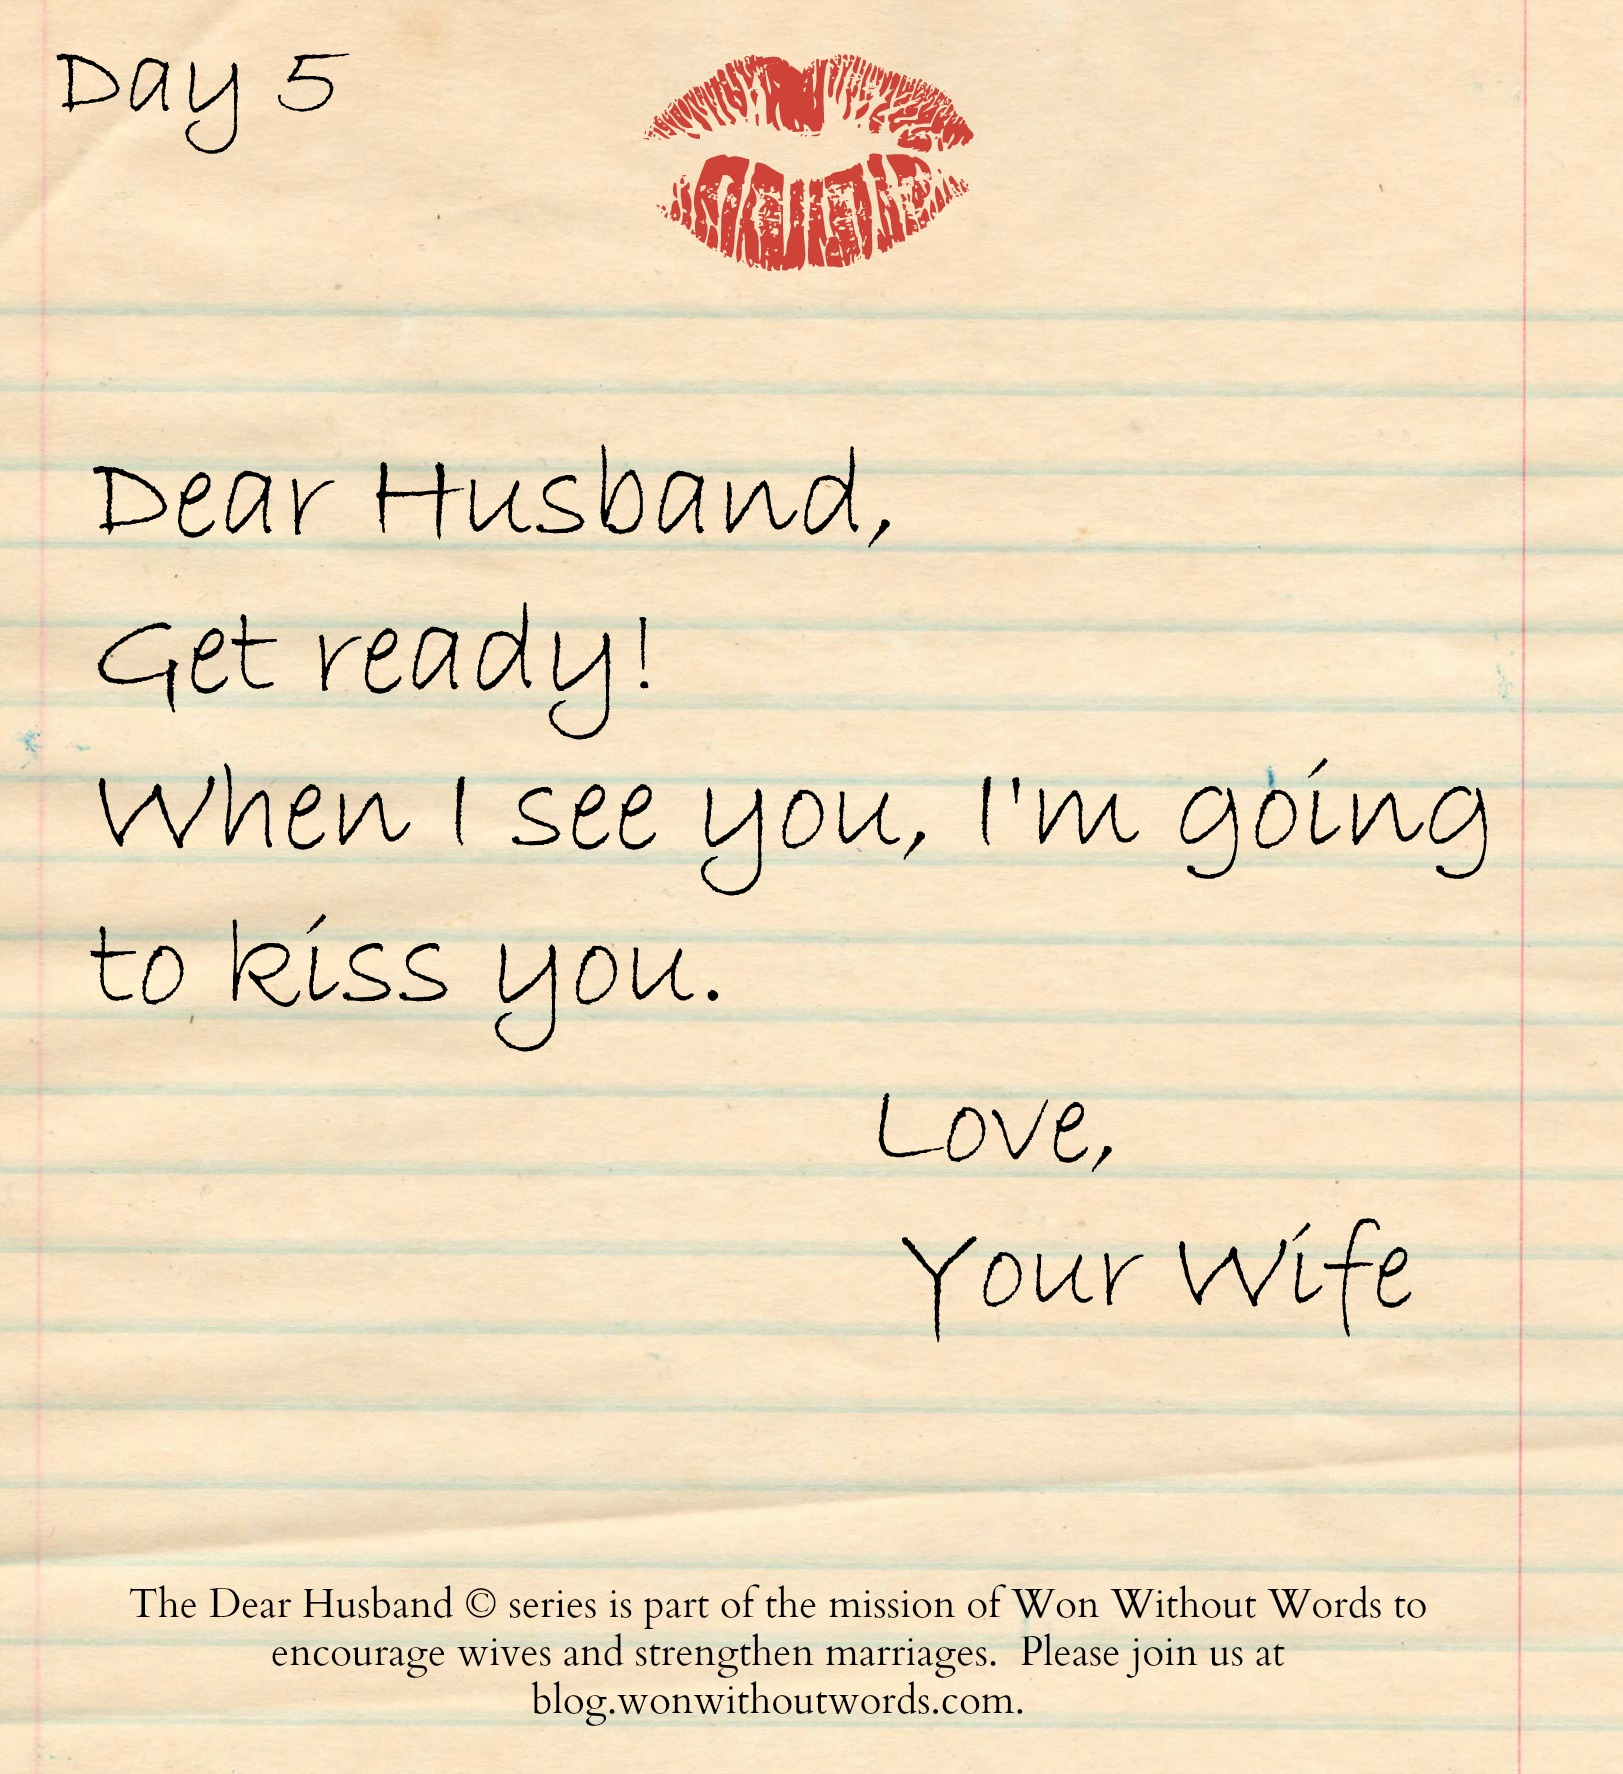 encouragement for wives;blog.wonwithoutwords.com